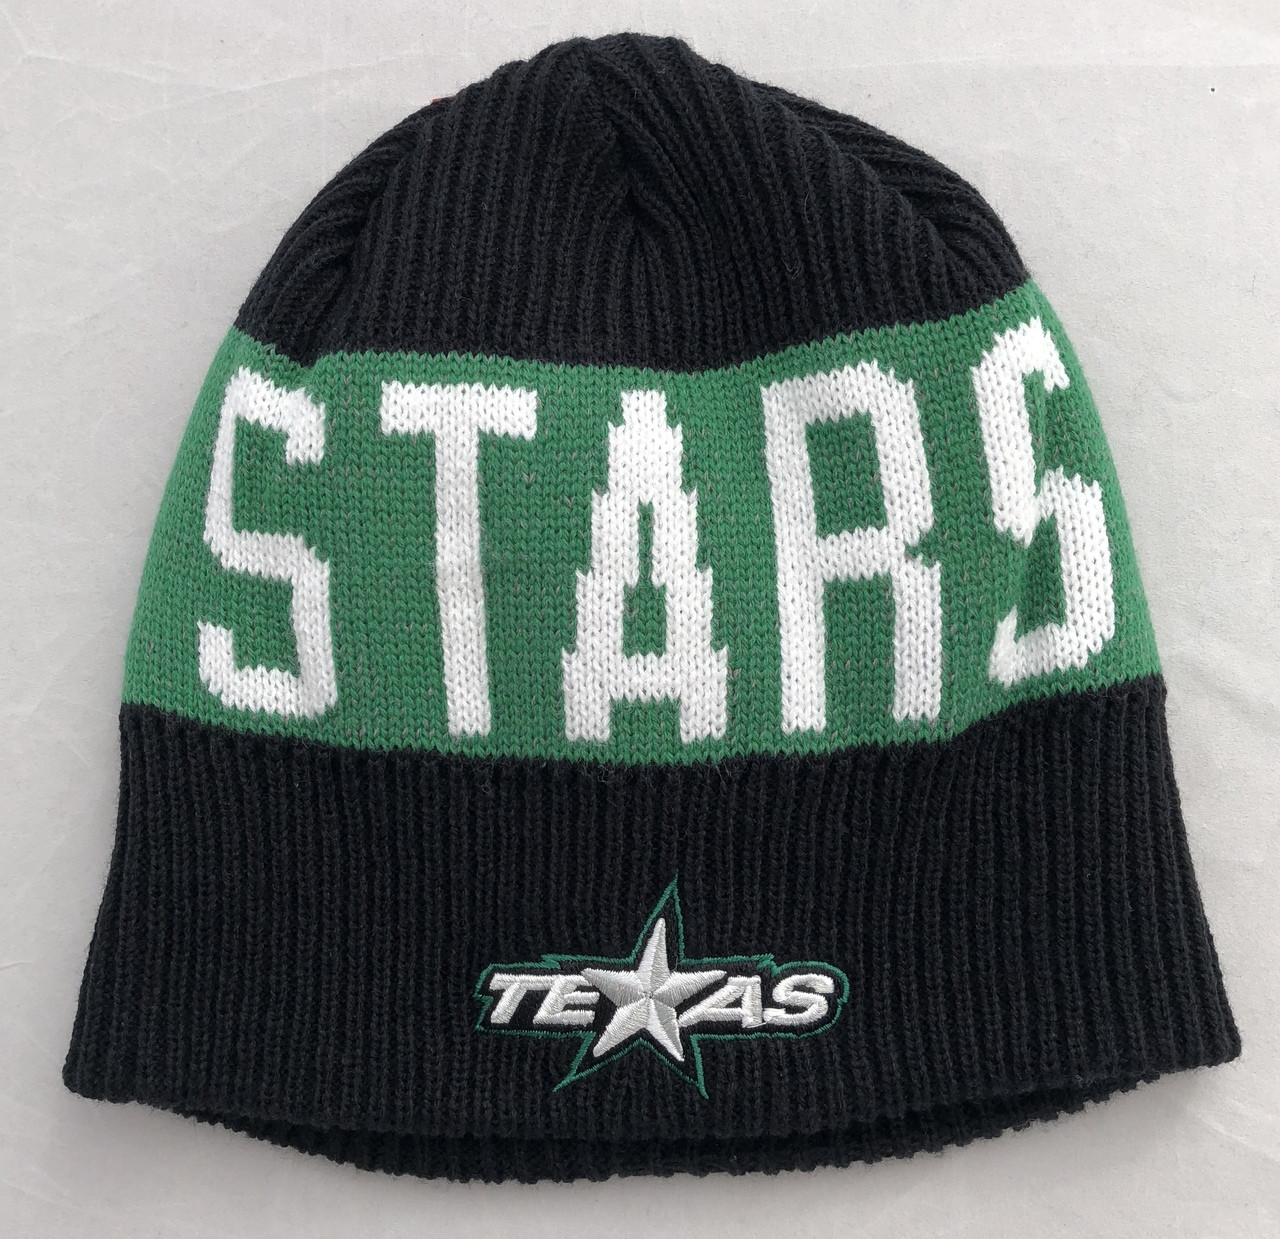 CCM Black and Green Ribbed Beanie - texasstarshockey 73615627a2c